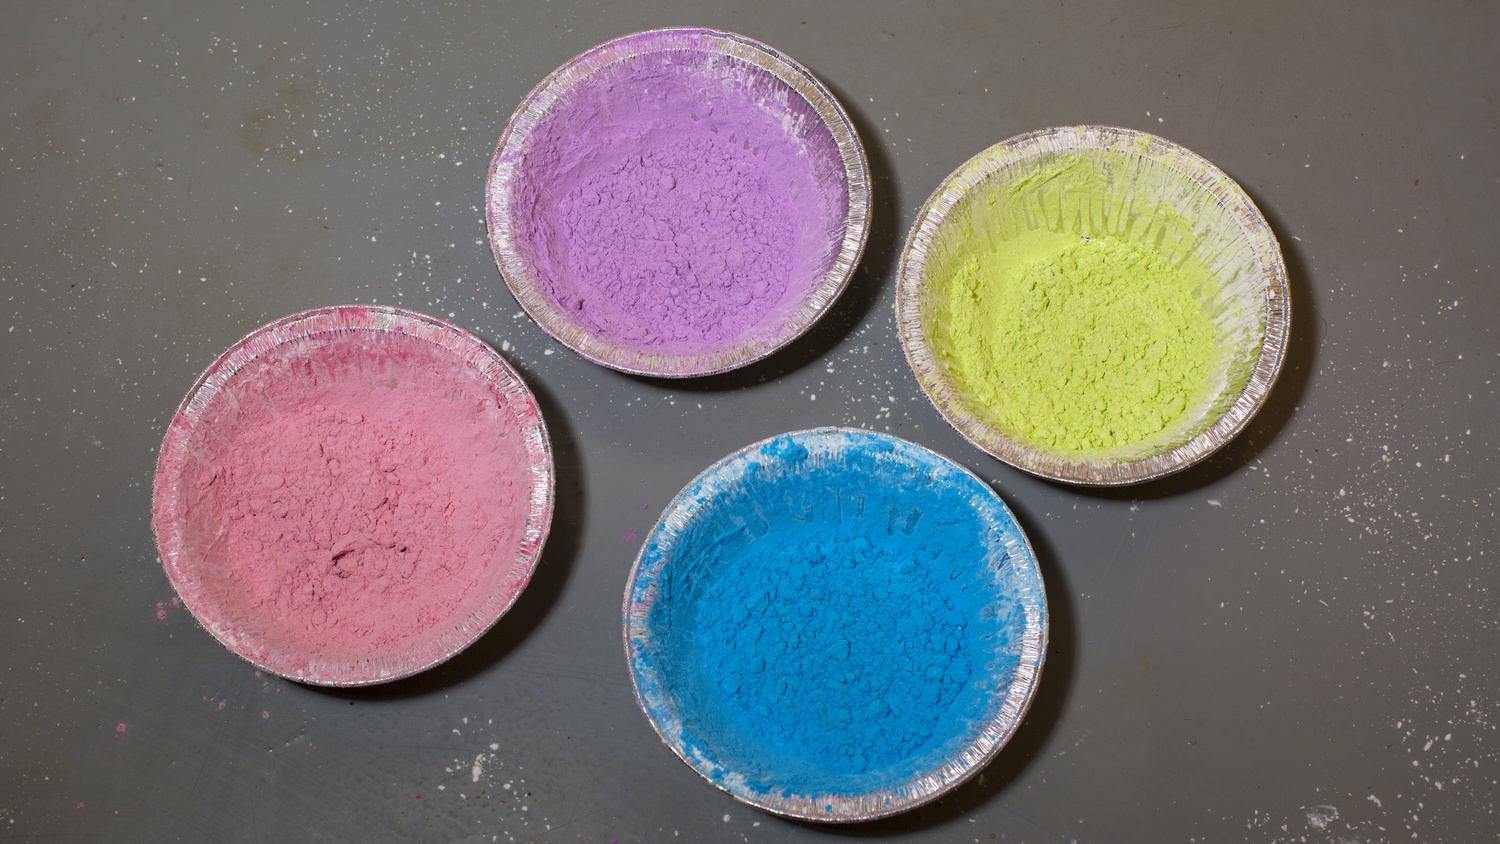 Make Your Own Colorful Powder for Photoshoots | Fstoppers